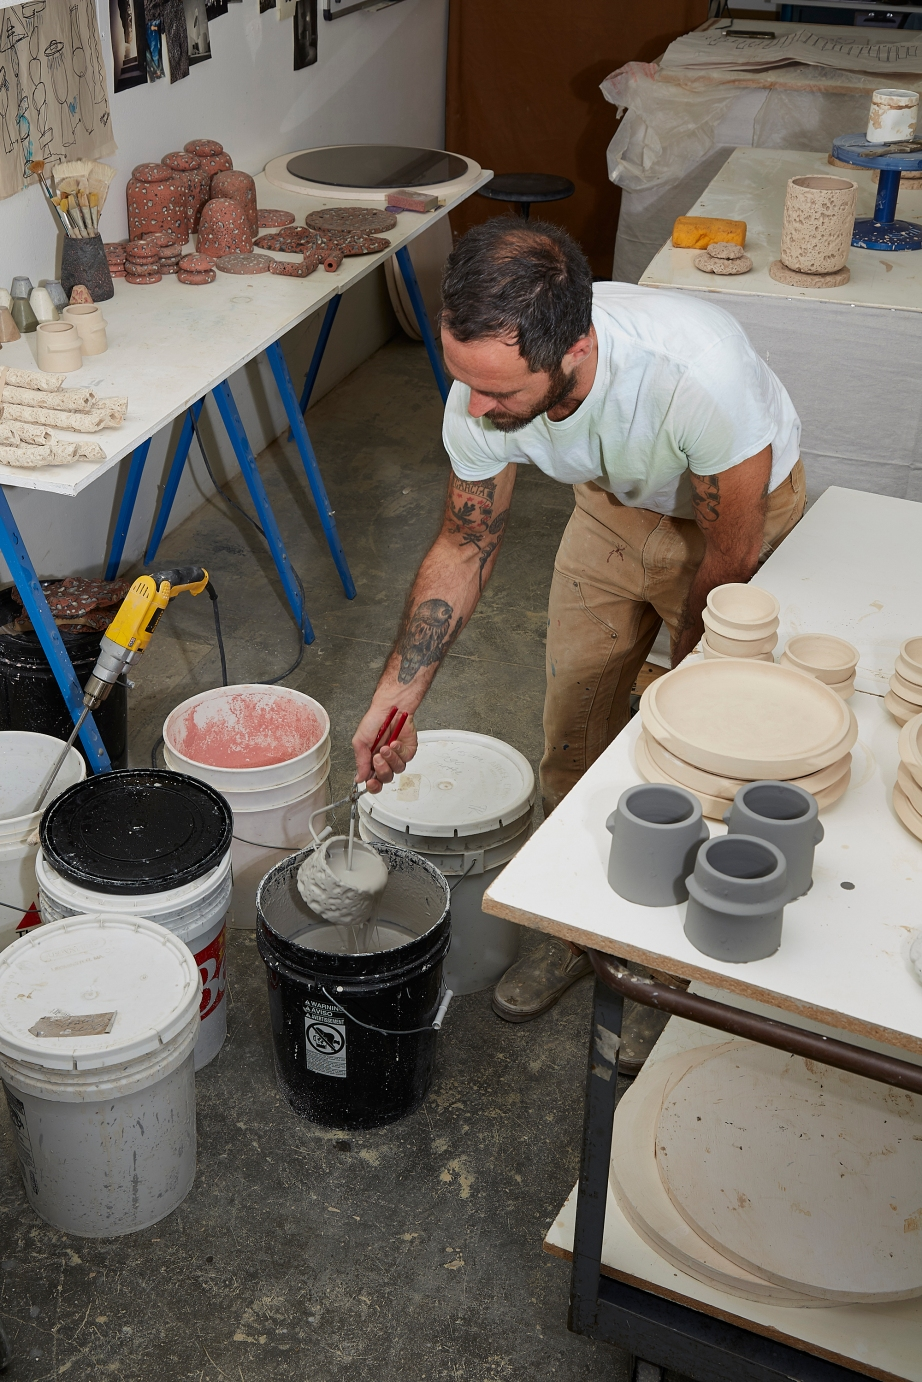 Studio LGS ceramics, Los Angeles, CA, copyright Diana Koenigsber